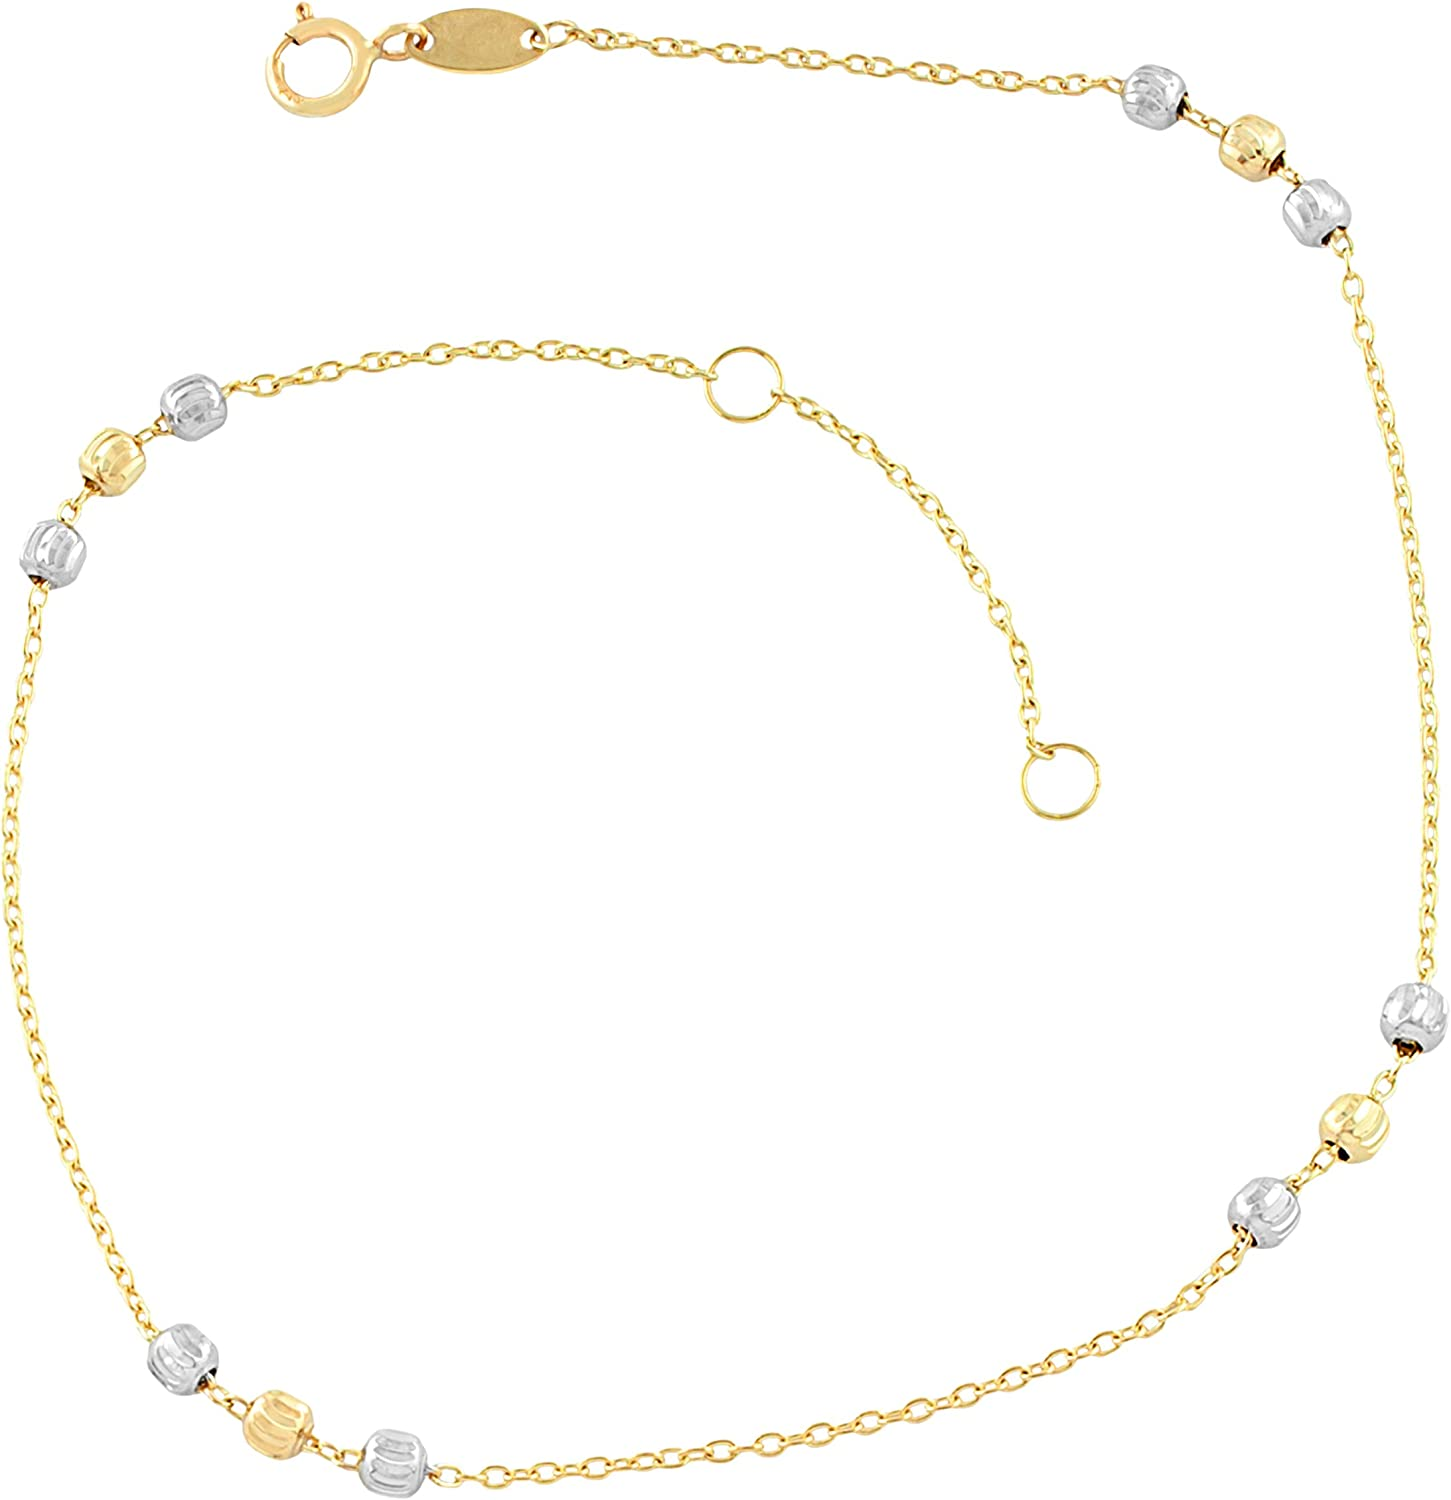 Kooljewelry 10k Two-Tone Gold Bead Max 79% Ranking TOP6 OFF Station or Anklet 10 fits 9